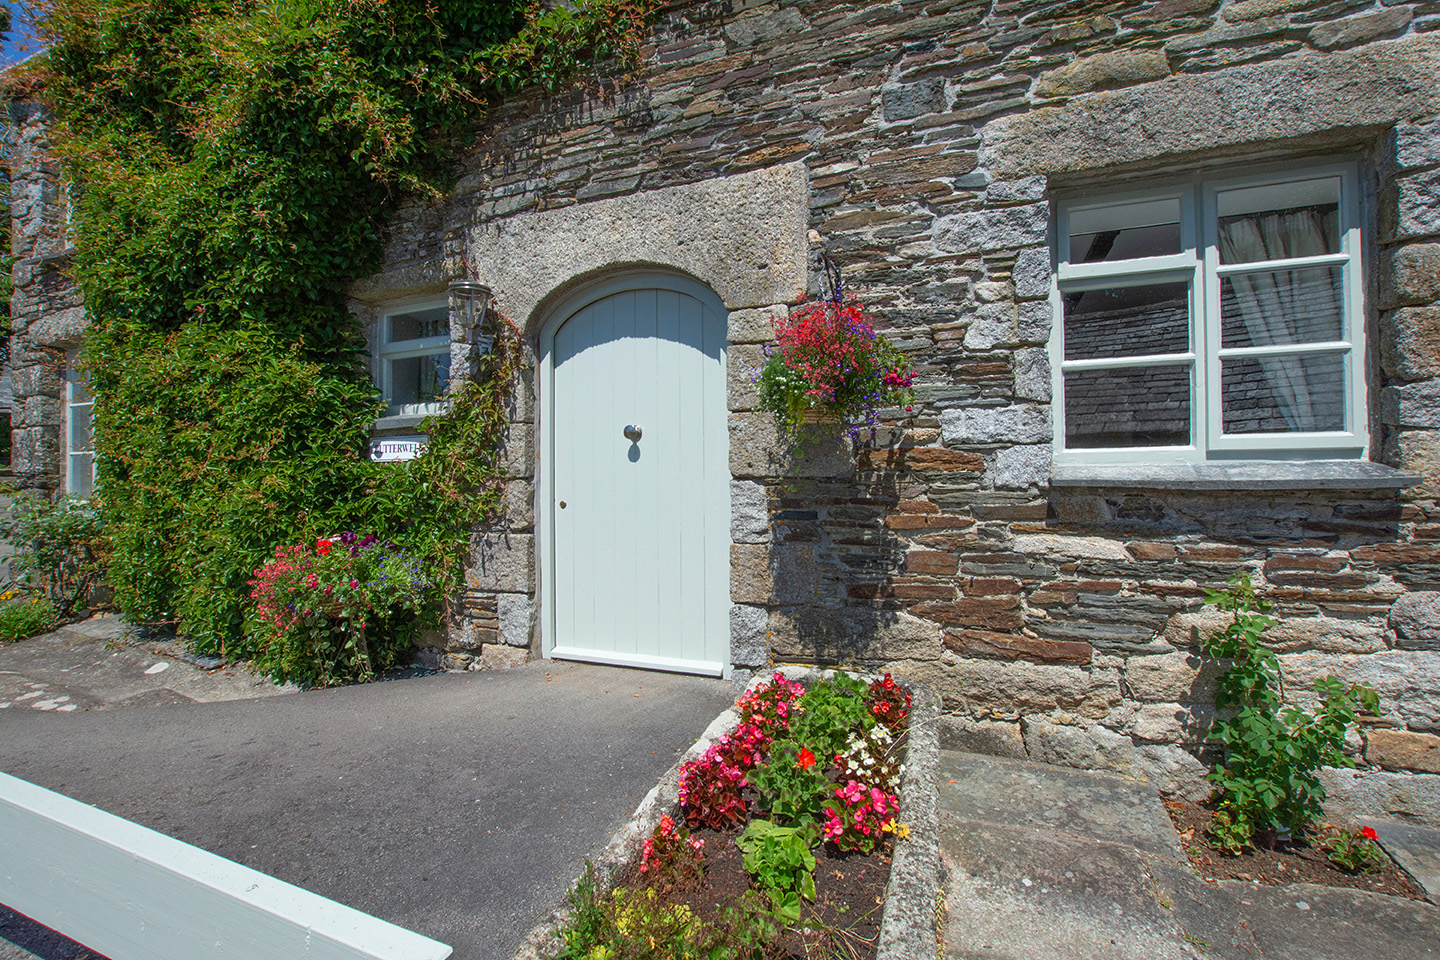 The exterior of Butterwell luxury self catering converted barn holiday cottage at Penrose Burden in North Cornwall 02.jpg